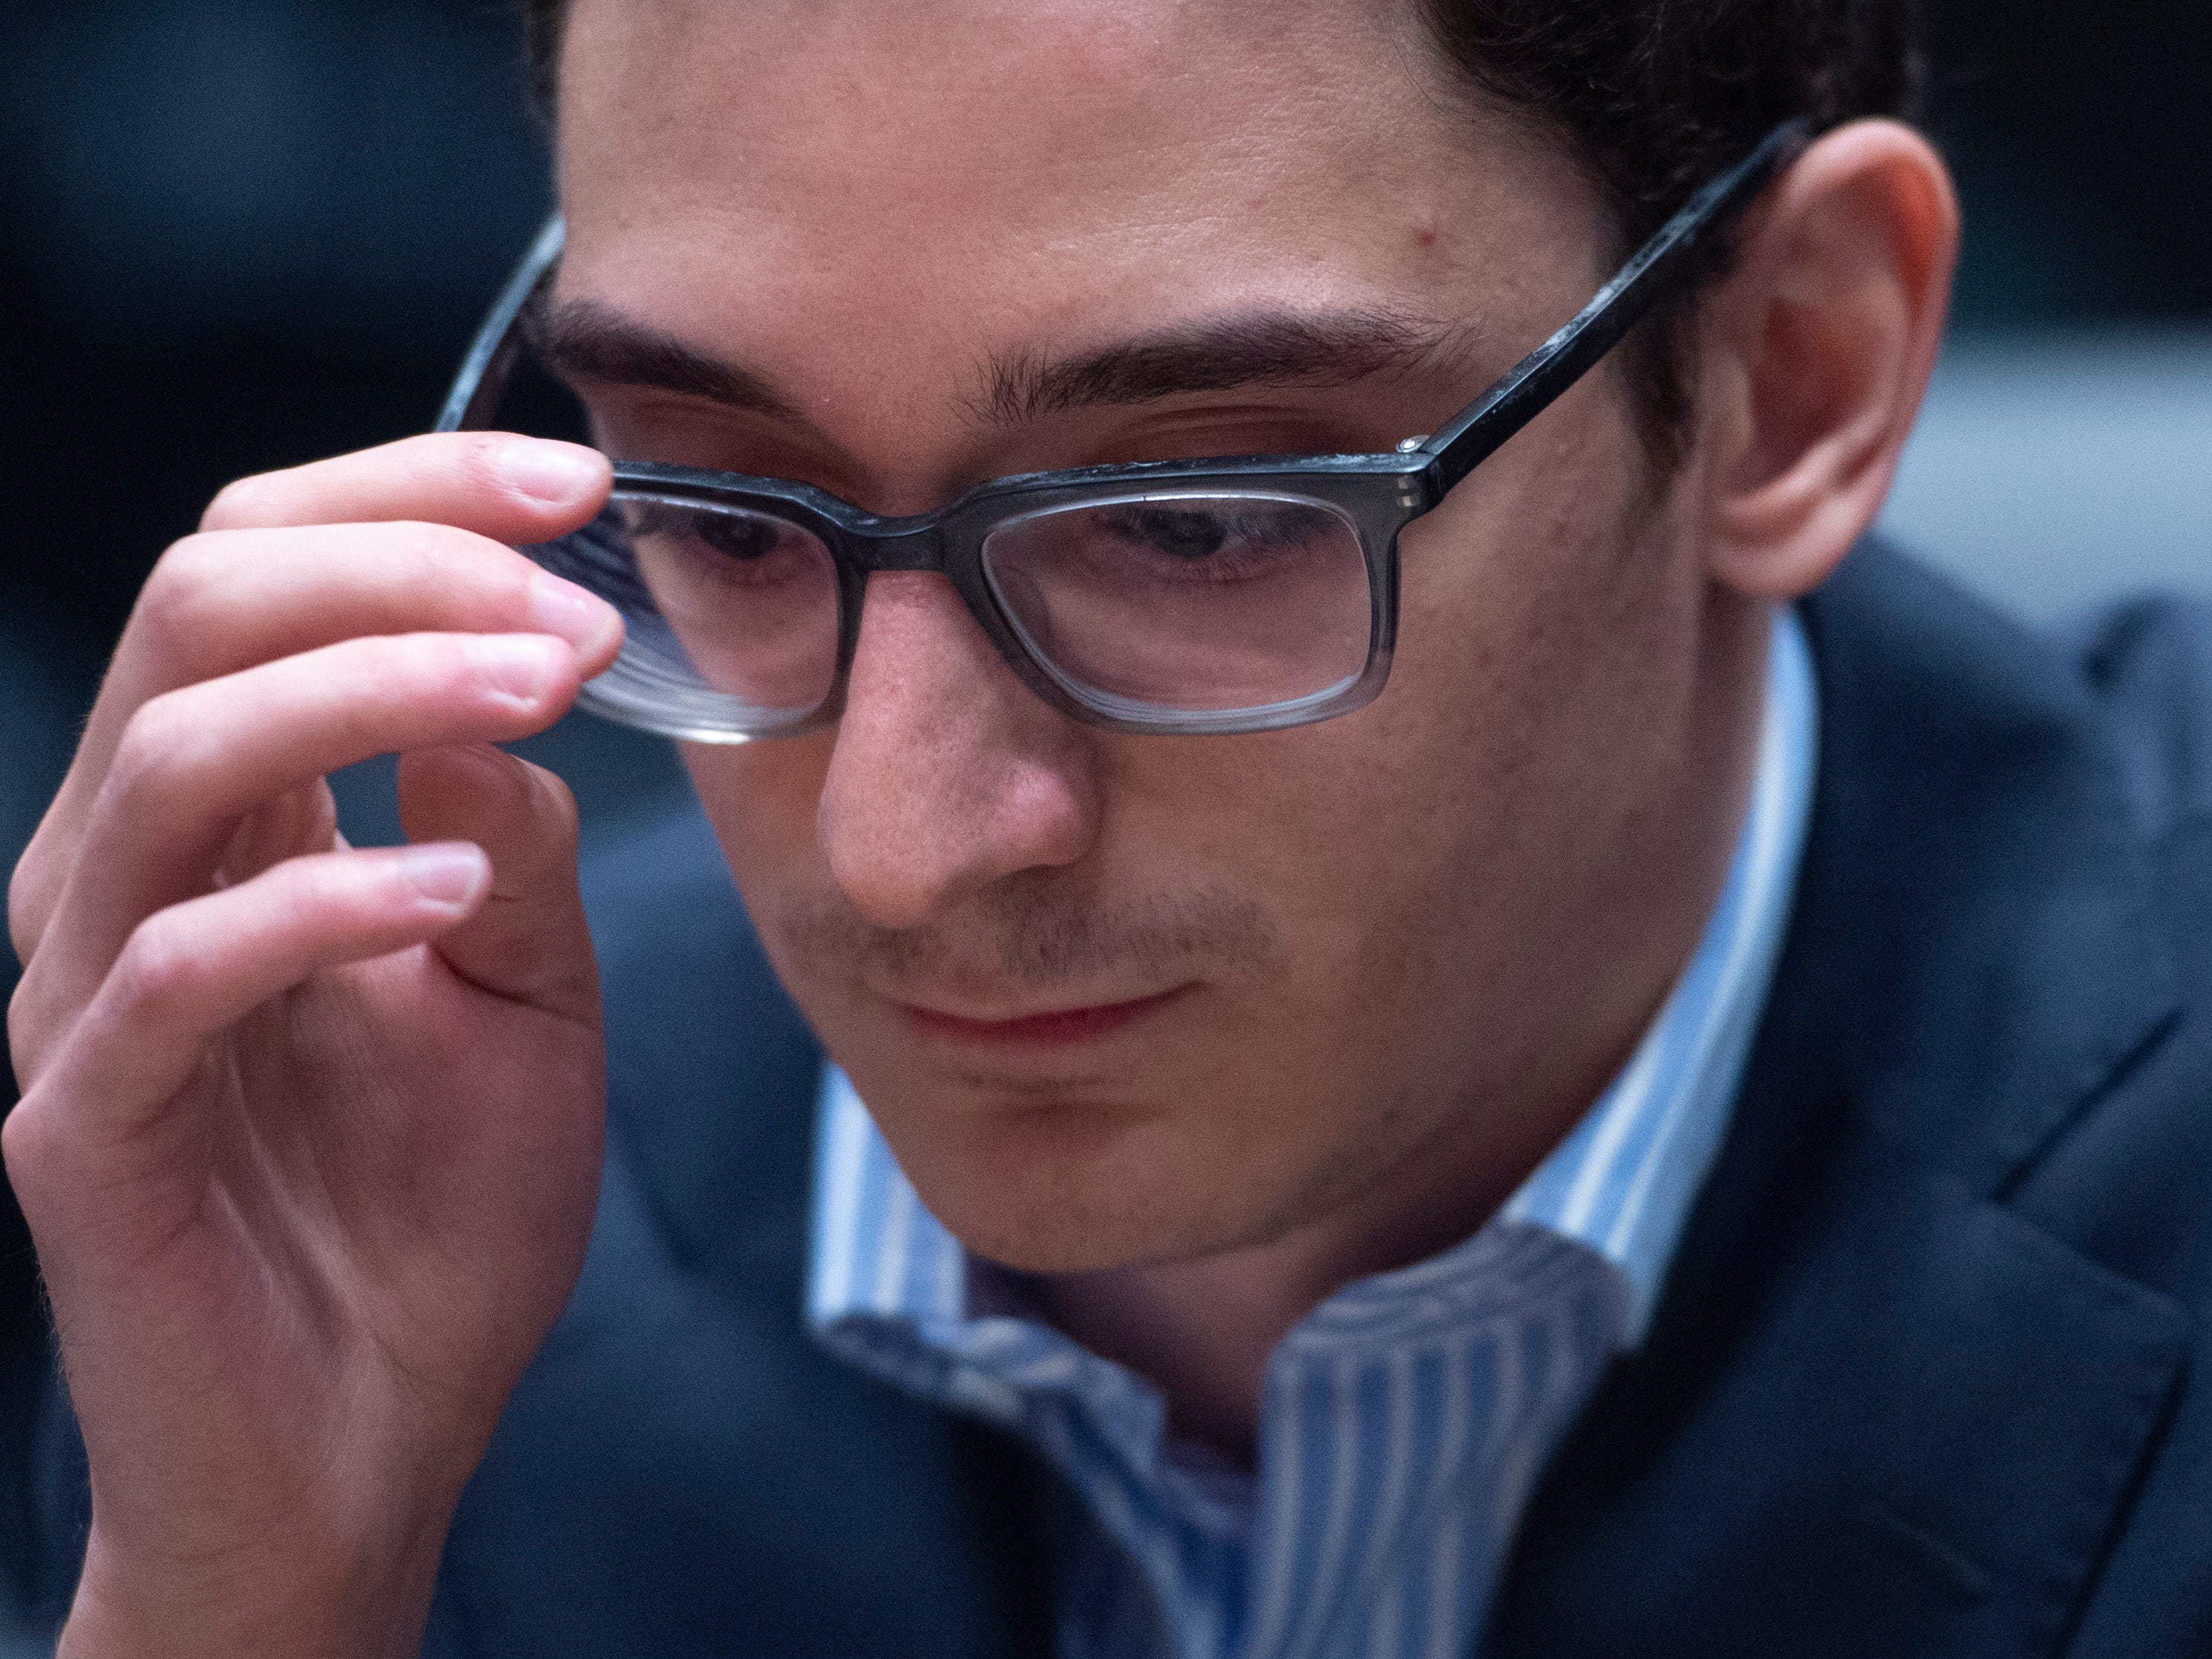 American Fabiano Caruana contemplates his next move against reigning chess world champion Magnus Carlsen in their round eleven game during the World Chess Championship, Nov. 24, 2018, in London.